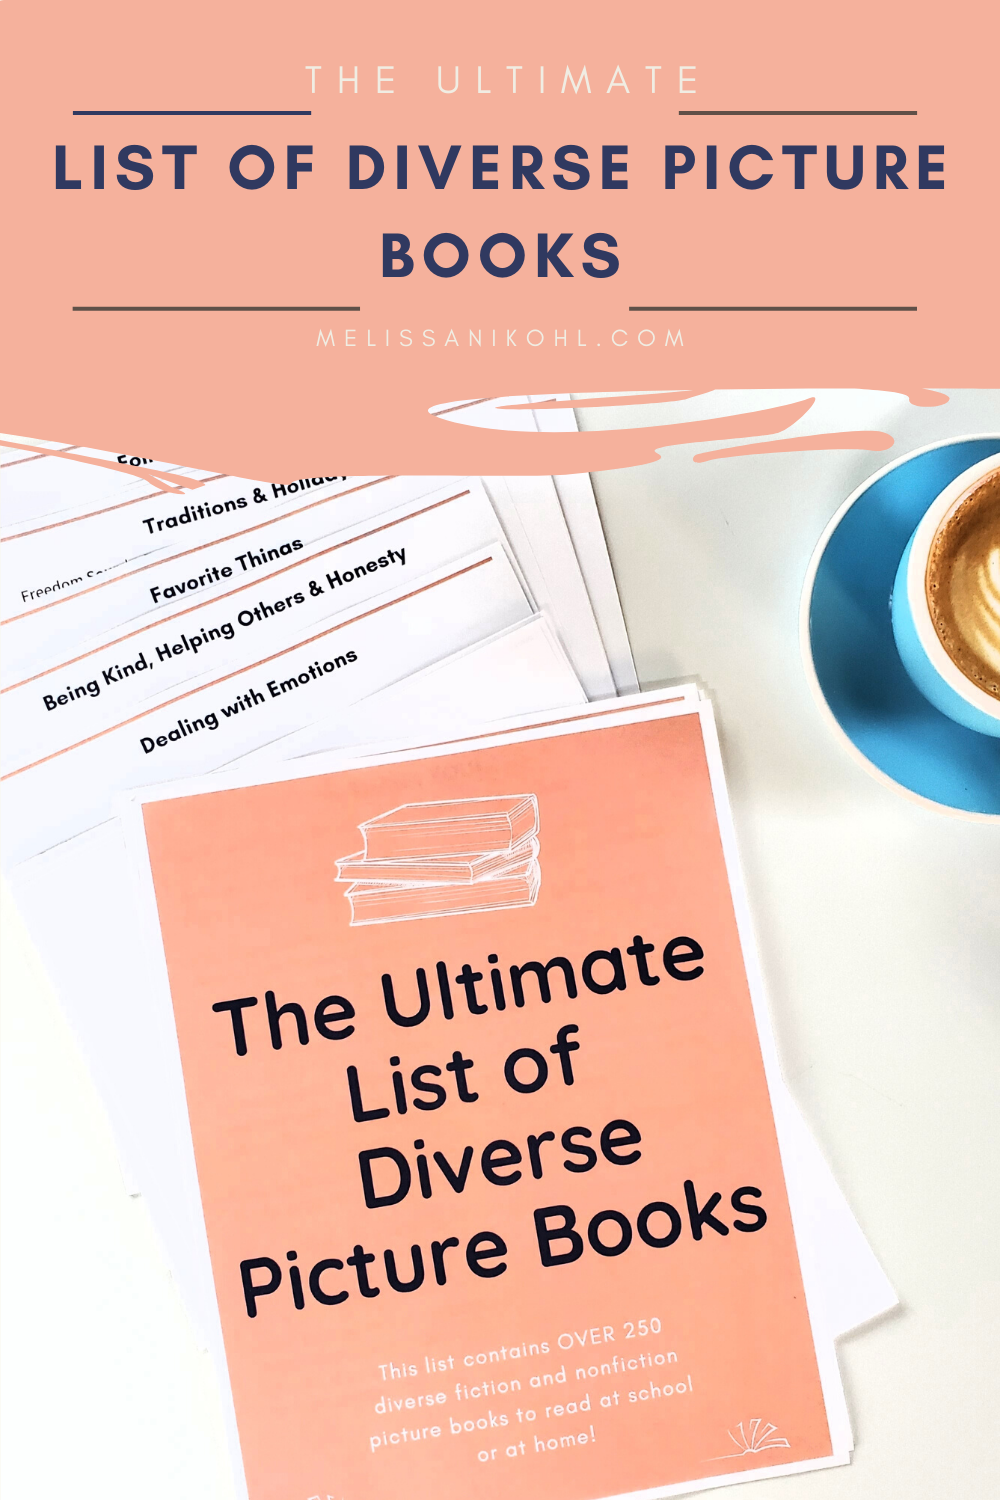 If you are looking for diverse picture books to add to your classroom or home library, this is the list for you. On this list you'll find over 250 books that will be perfect additions to your library. Diversify your picture books with this list!